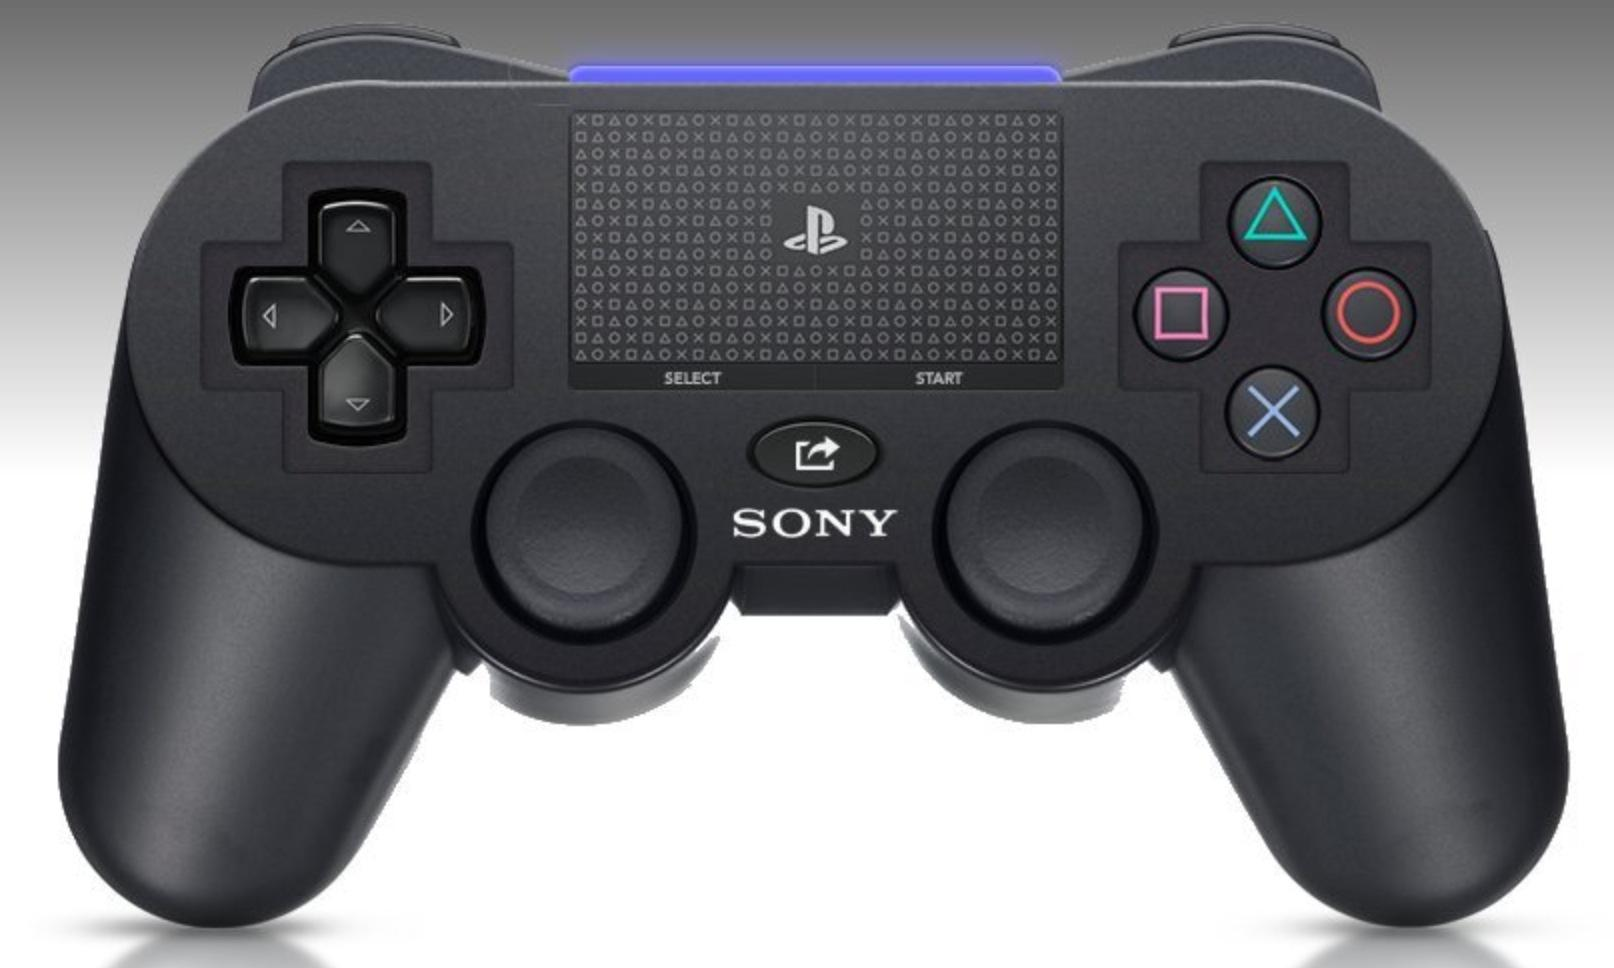 dualshock 4 compatible pc games